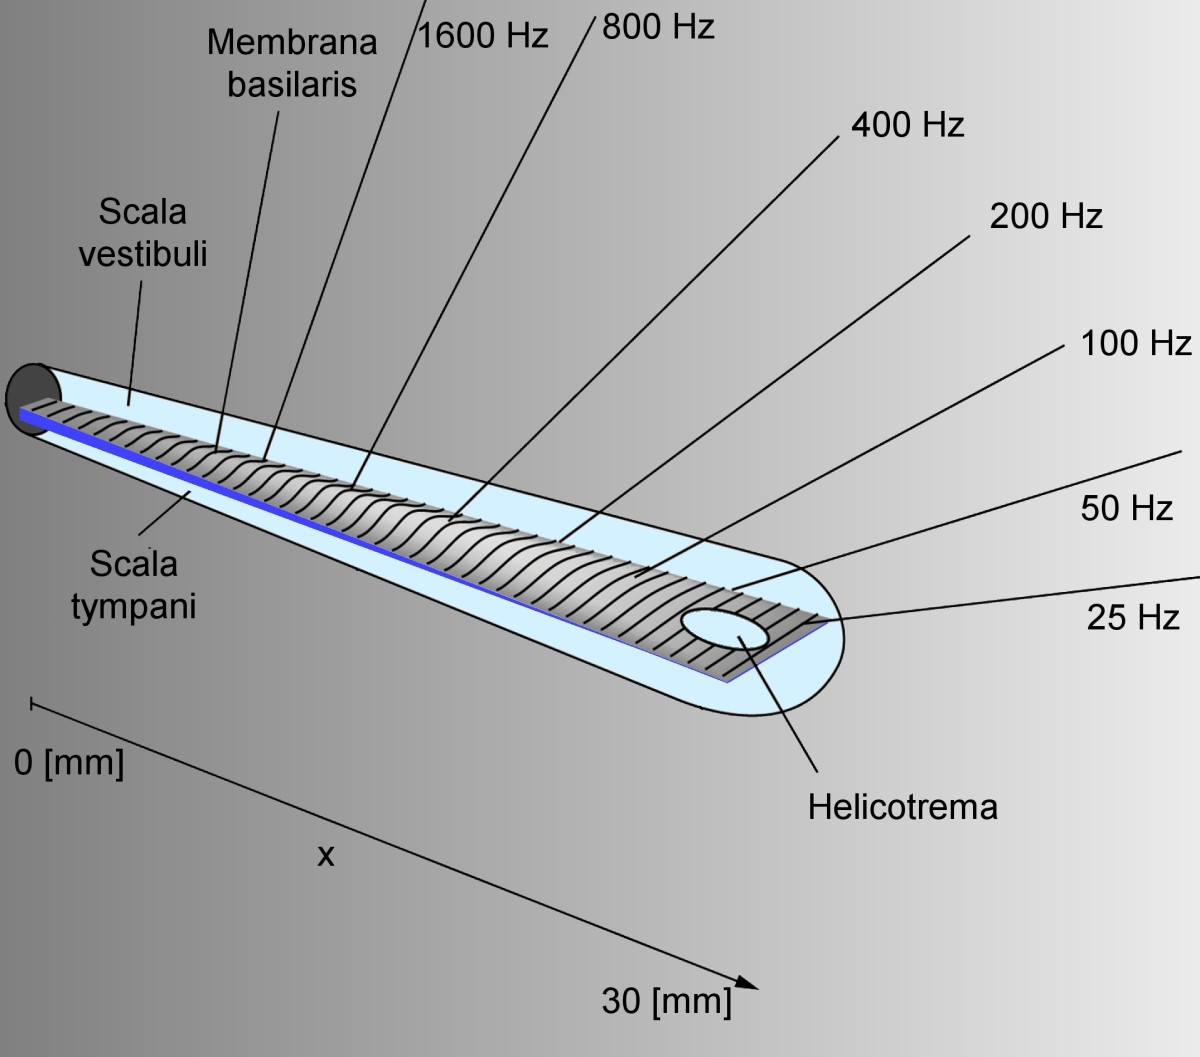 The detection location for various sound frequencies along the length of an uncoiled cochlea.